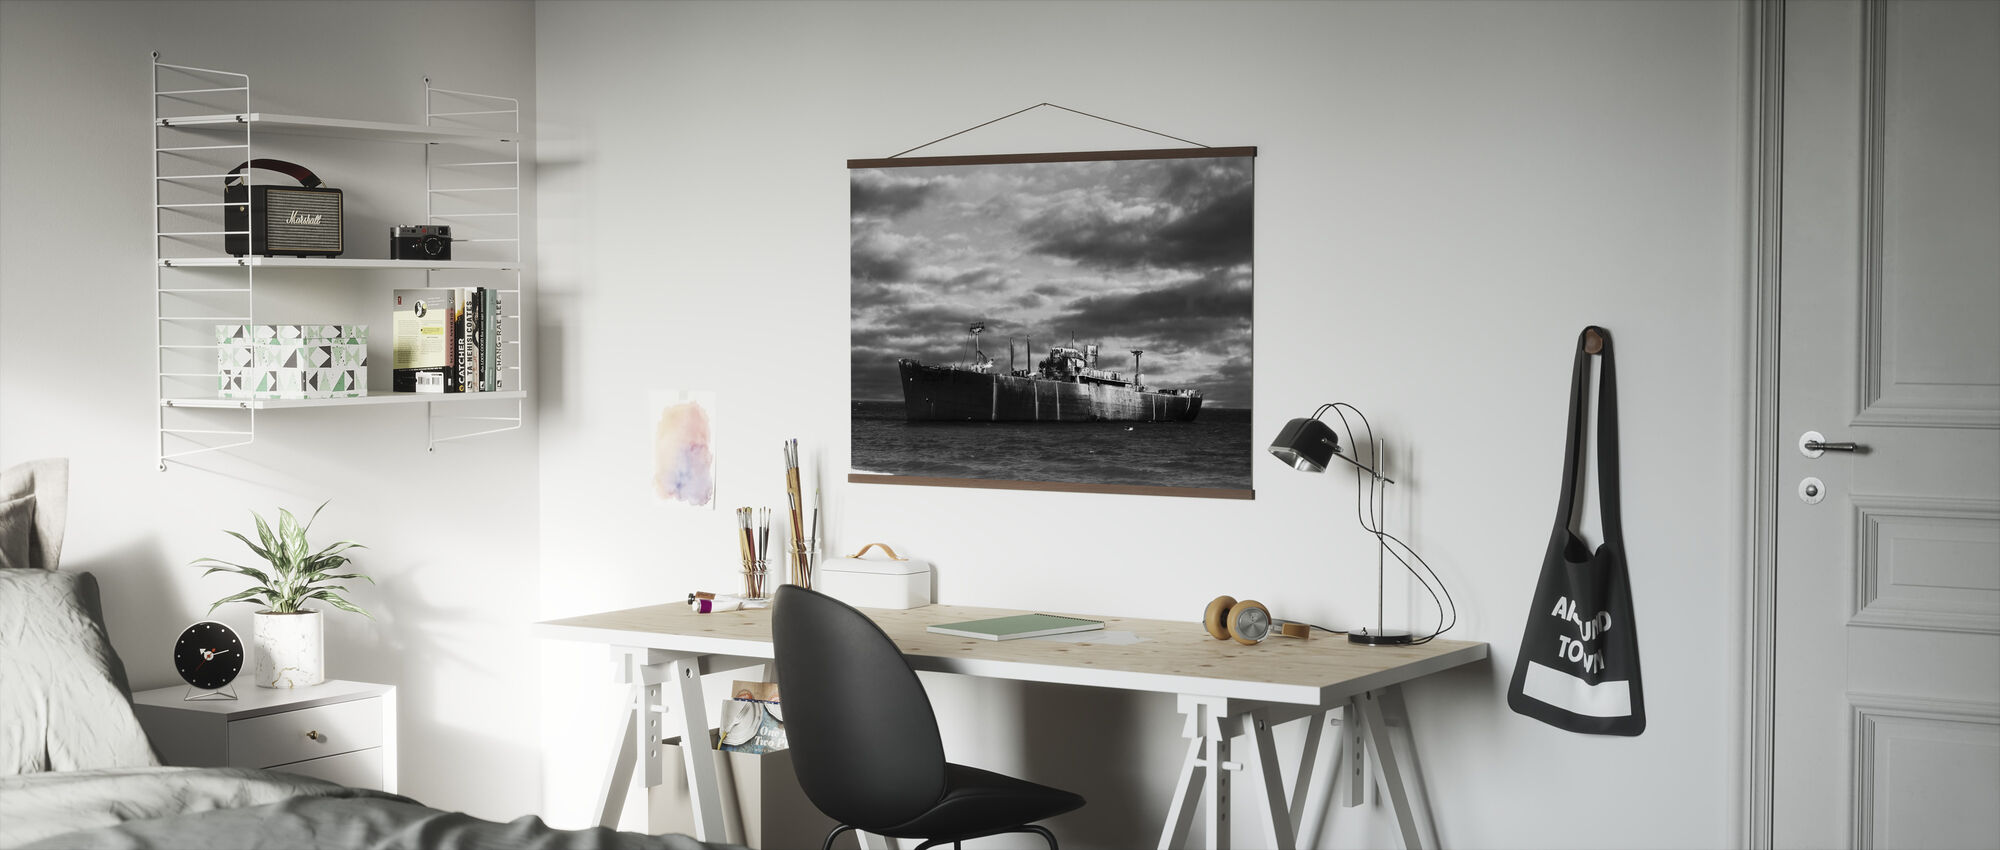 Ship Wreck - b/w - Poster - Office